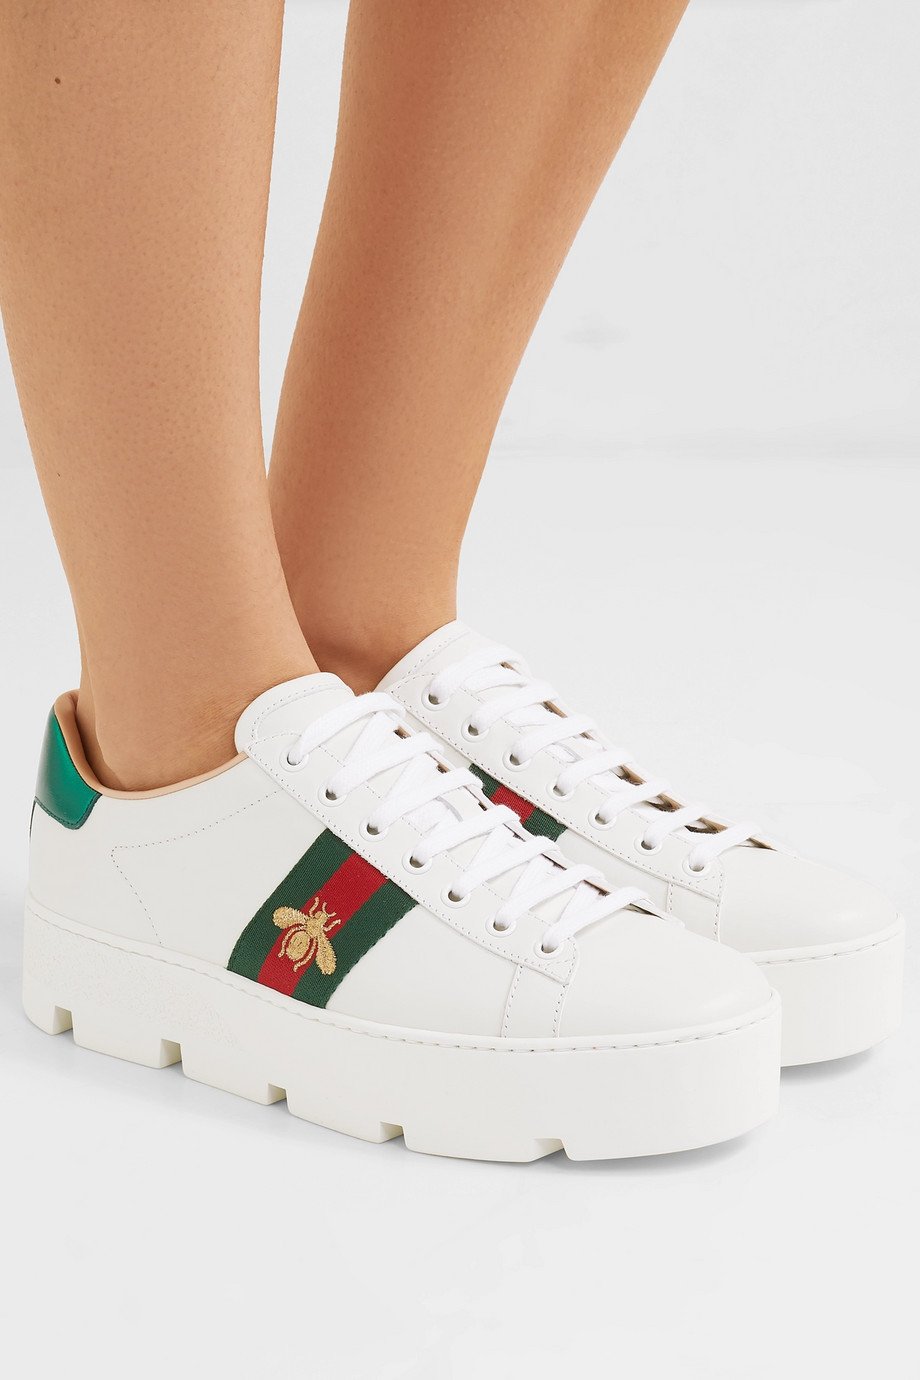 Gucci New Ace embroidered leather platform sneakers